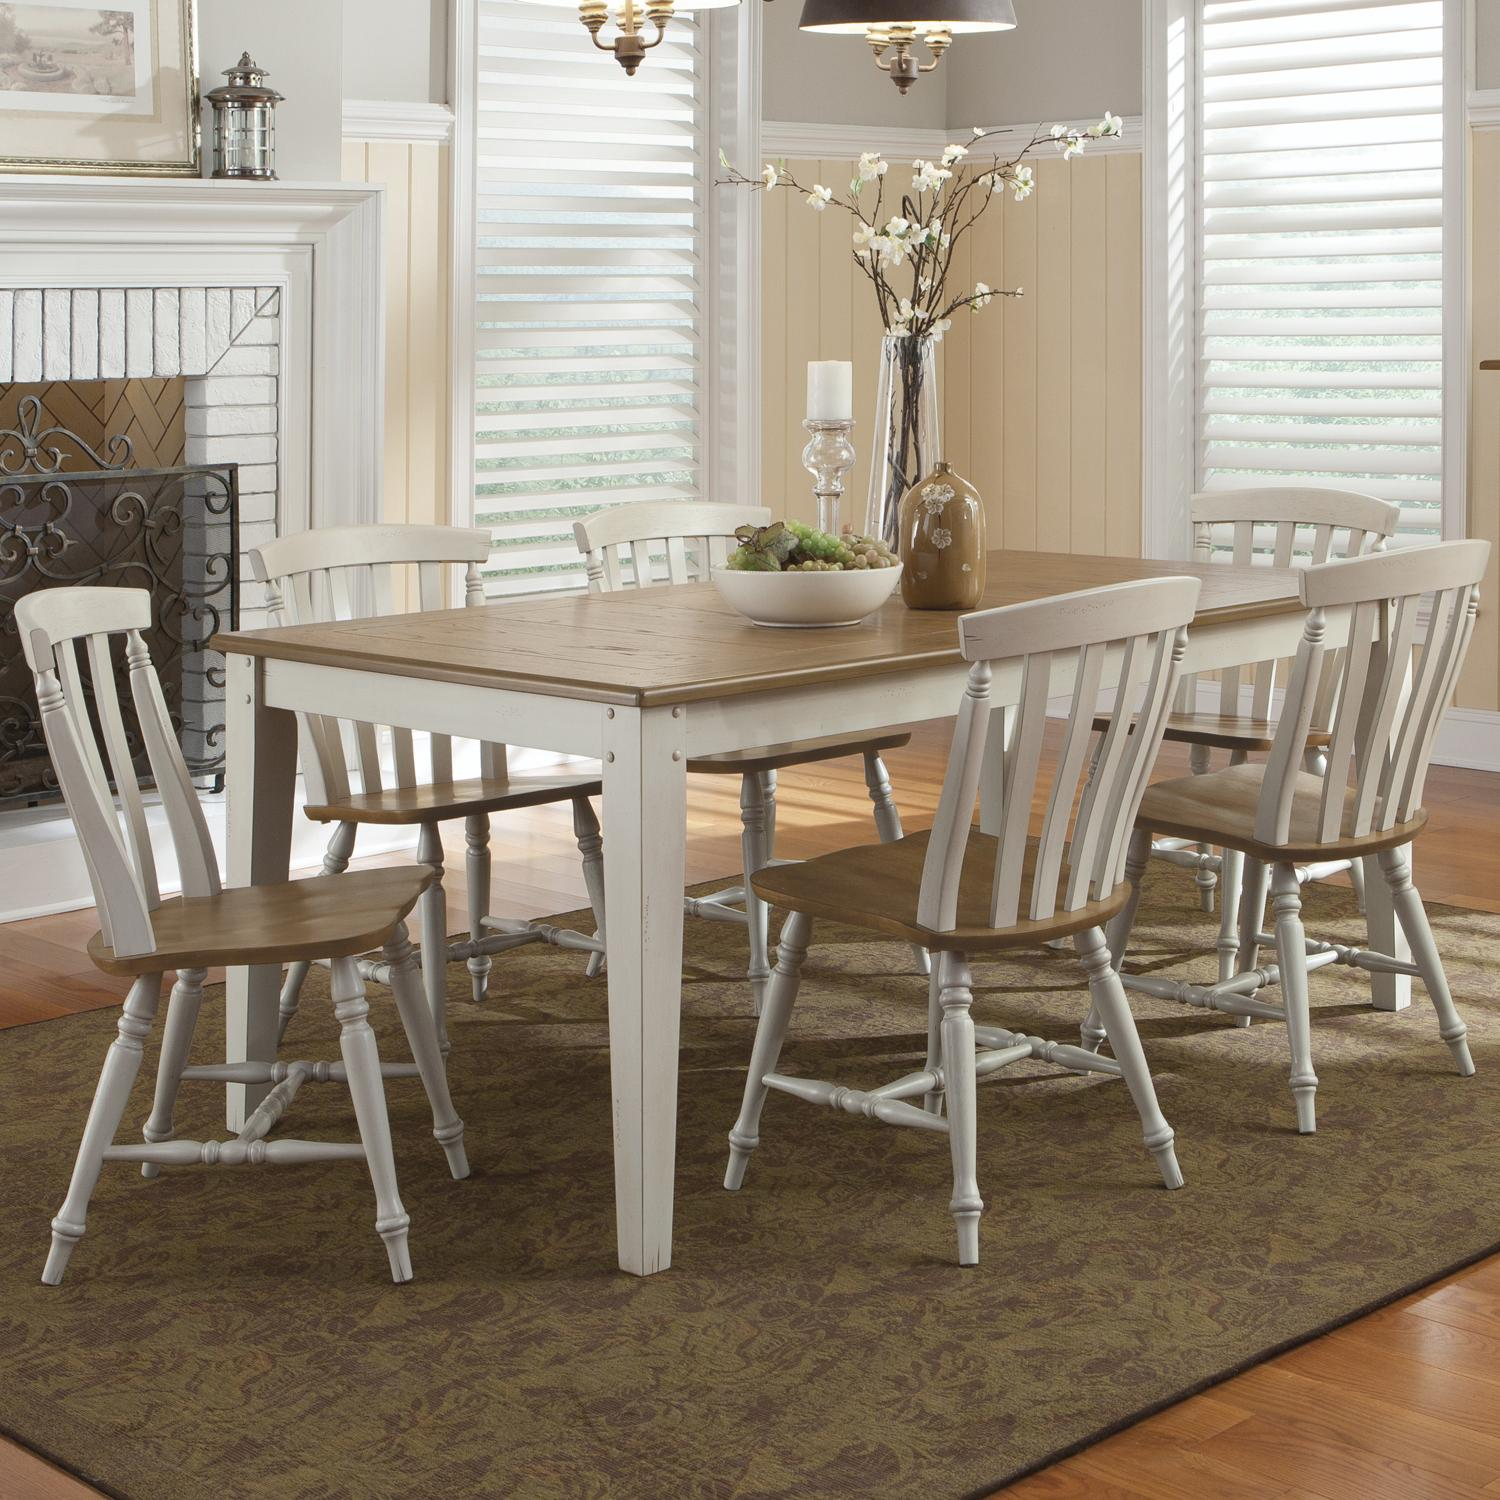 al s chairs and tables country dining liberty furniture fresco iii 841 cd 7rls seven piece